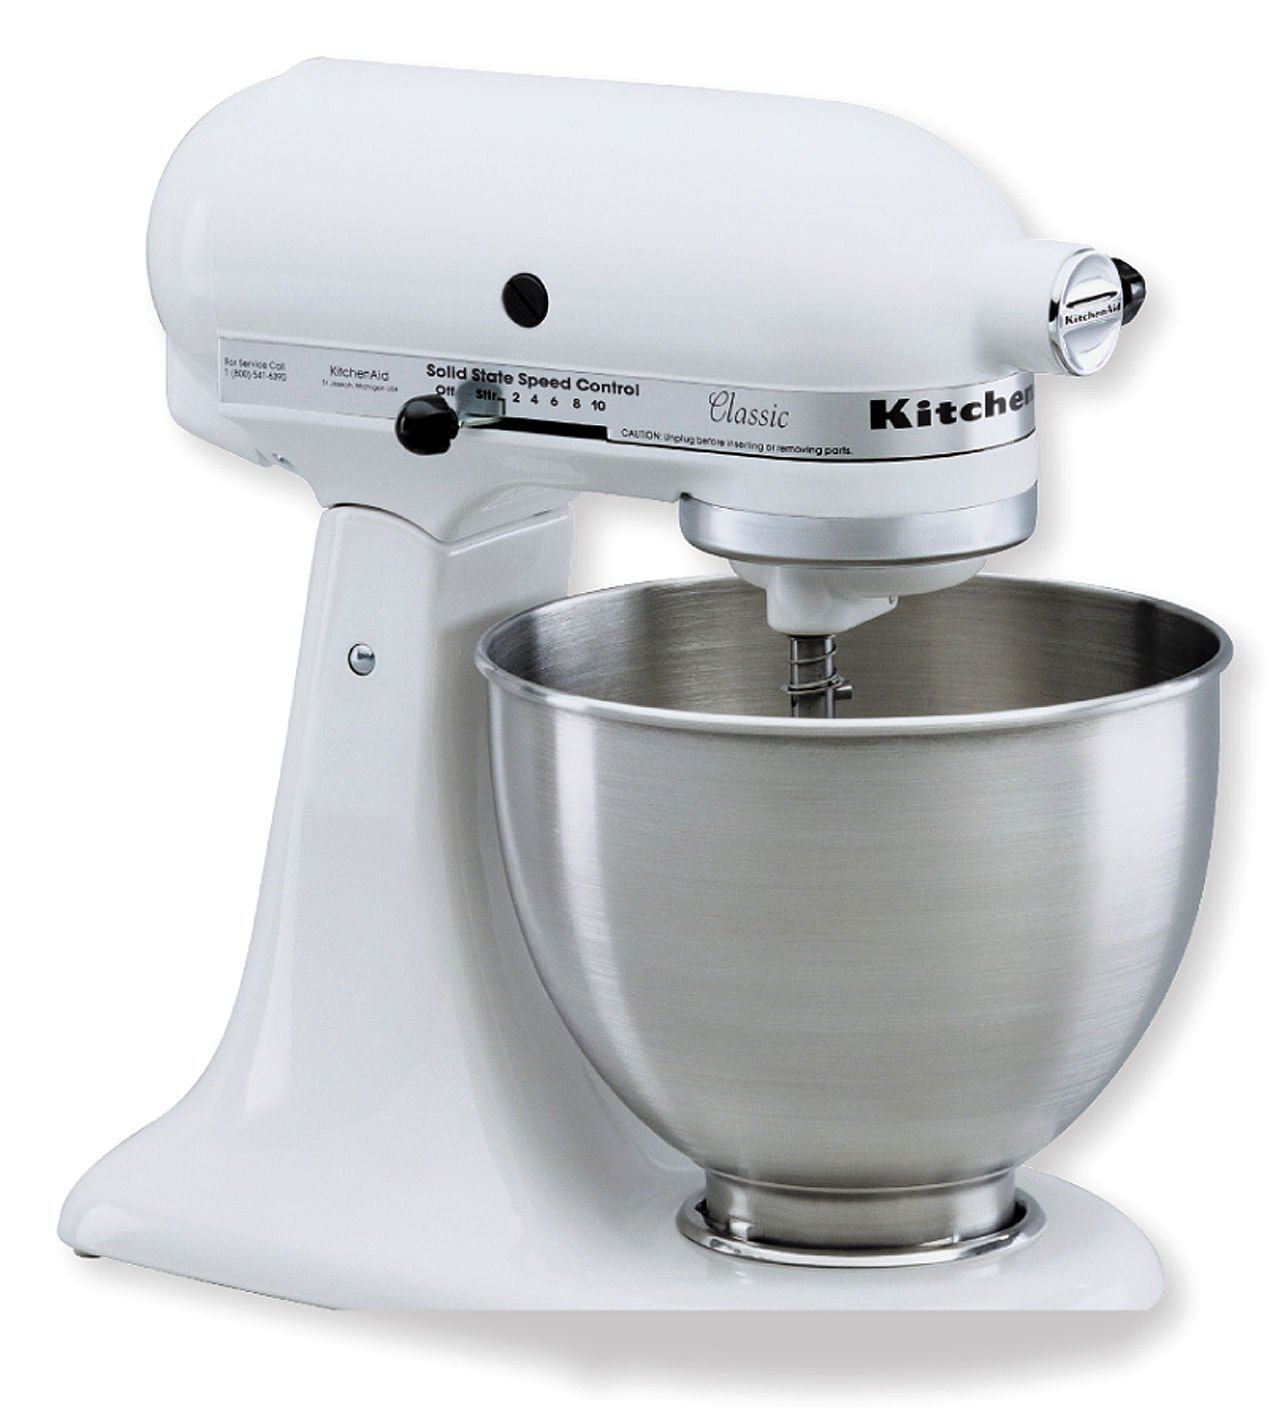 KitchenAid KSM75WH Classic Plus Tilt-Head 4-1/2-Quart Stand ...